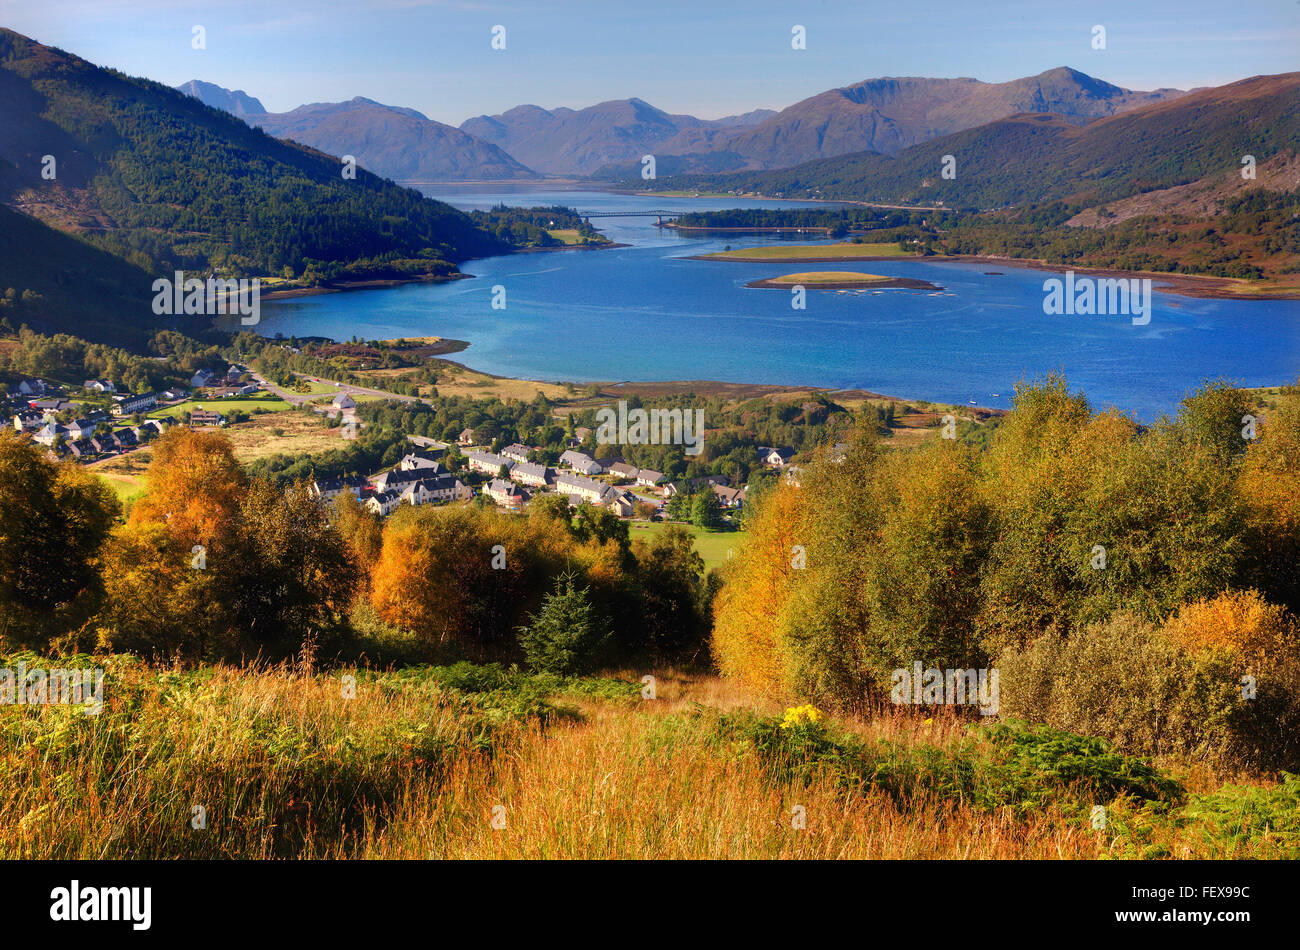 Autumn scene of Ballachulish and Loch Leven, West Highlands. - Stock Image